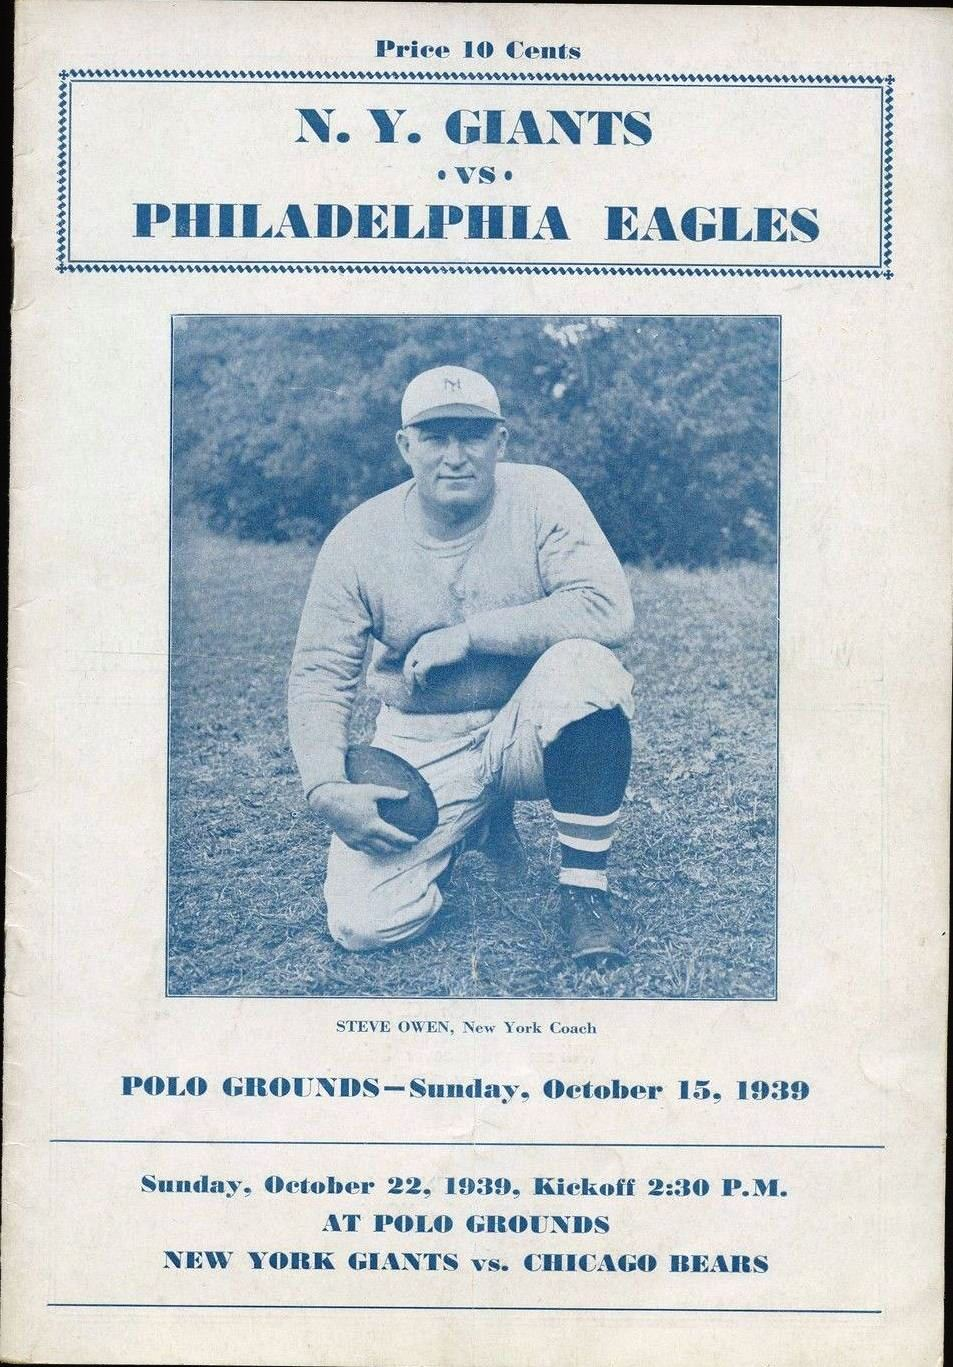 Steve Owen, New York Giants Game Program (October 15, 1939)